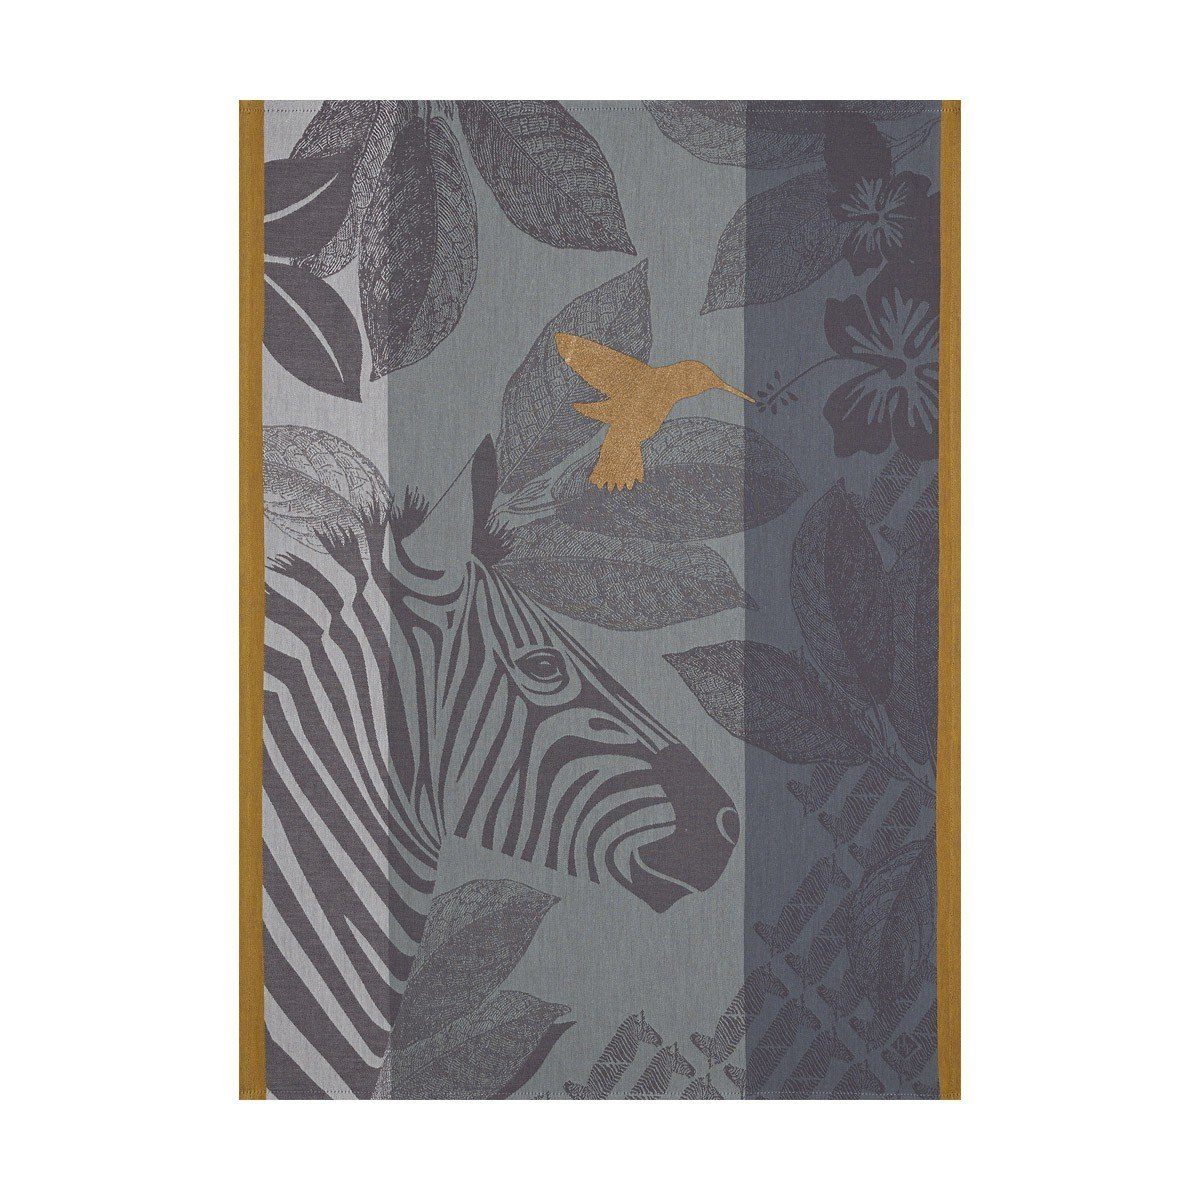 Zebra Tea Towels Set of 4 by Le Jacquard Français Fig Linens grey